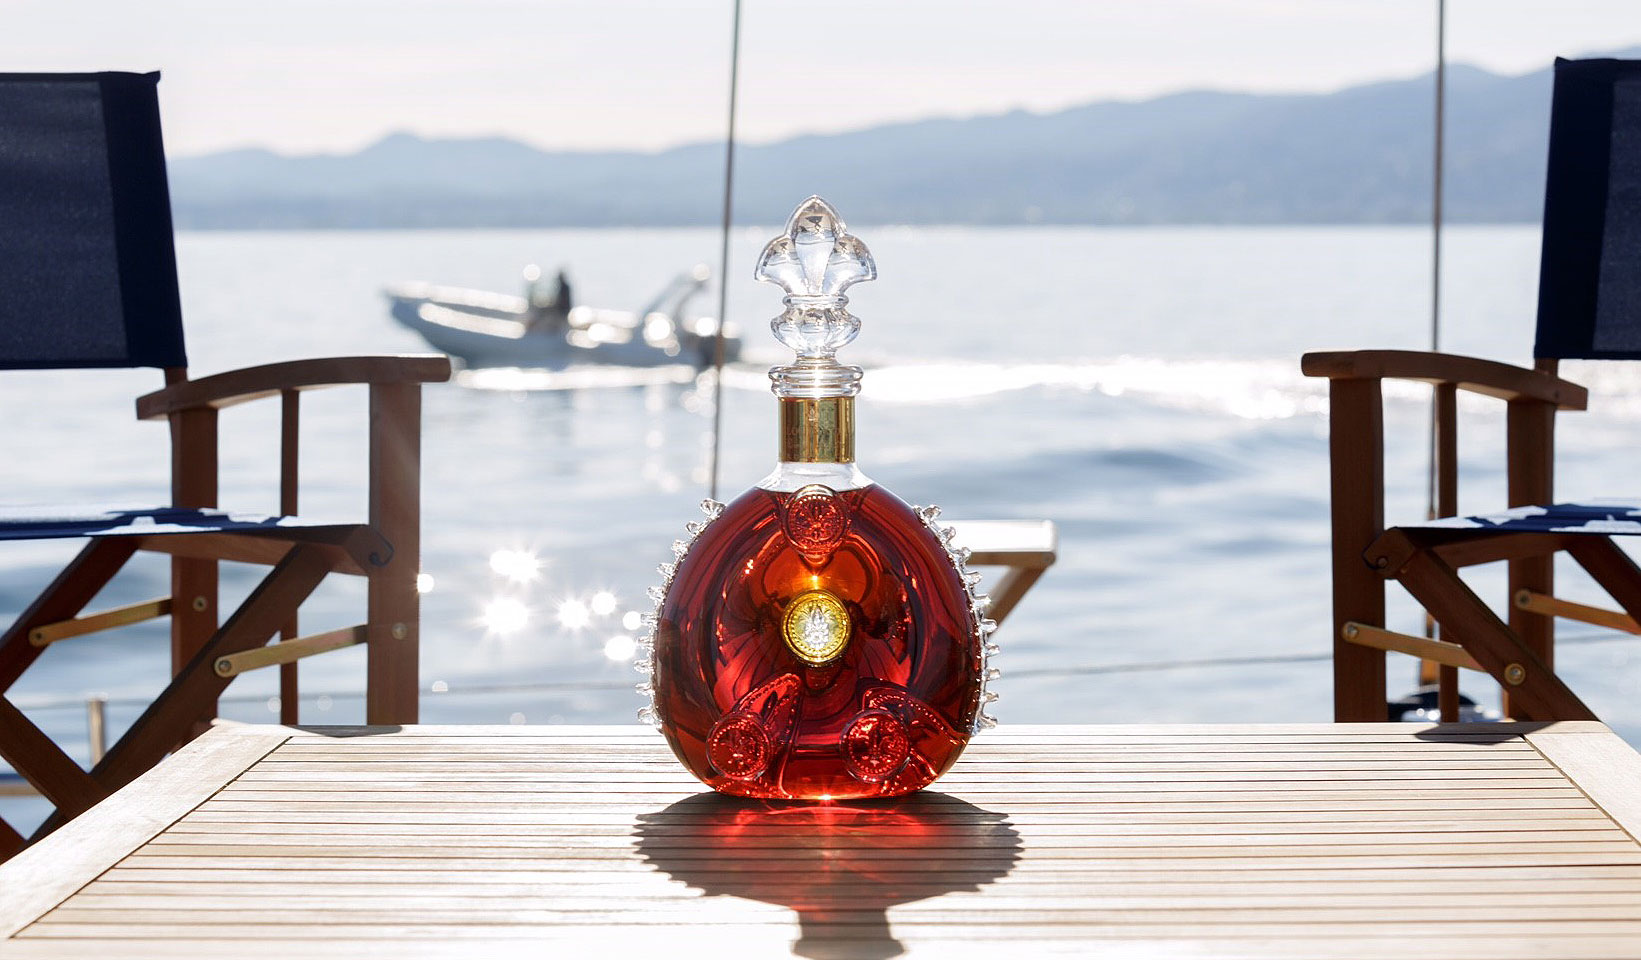 Louis XIII adds a touch of glamour at the Cannes Film Festival